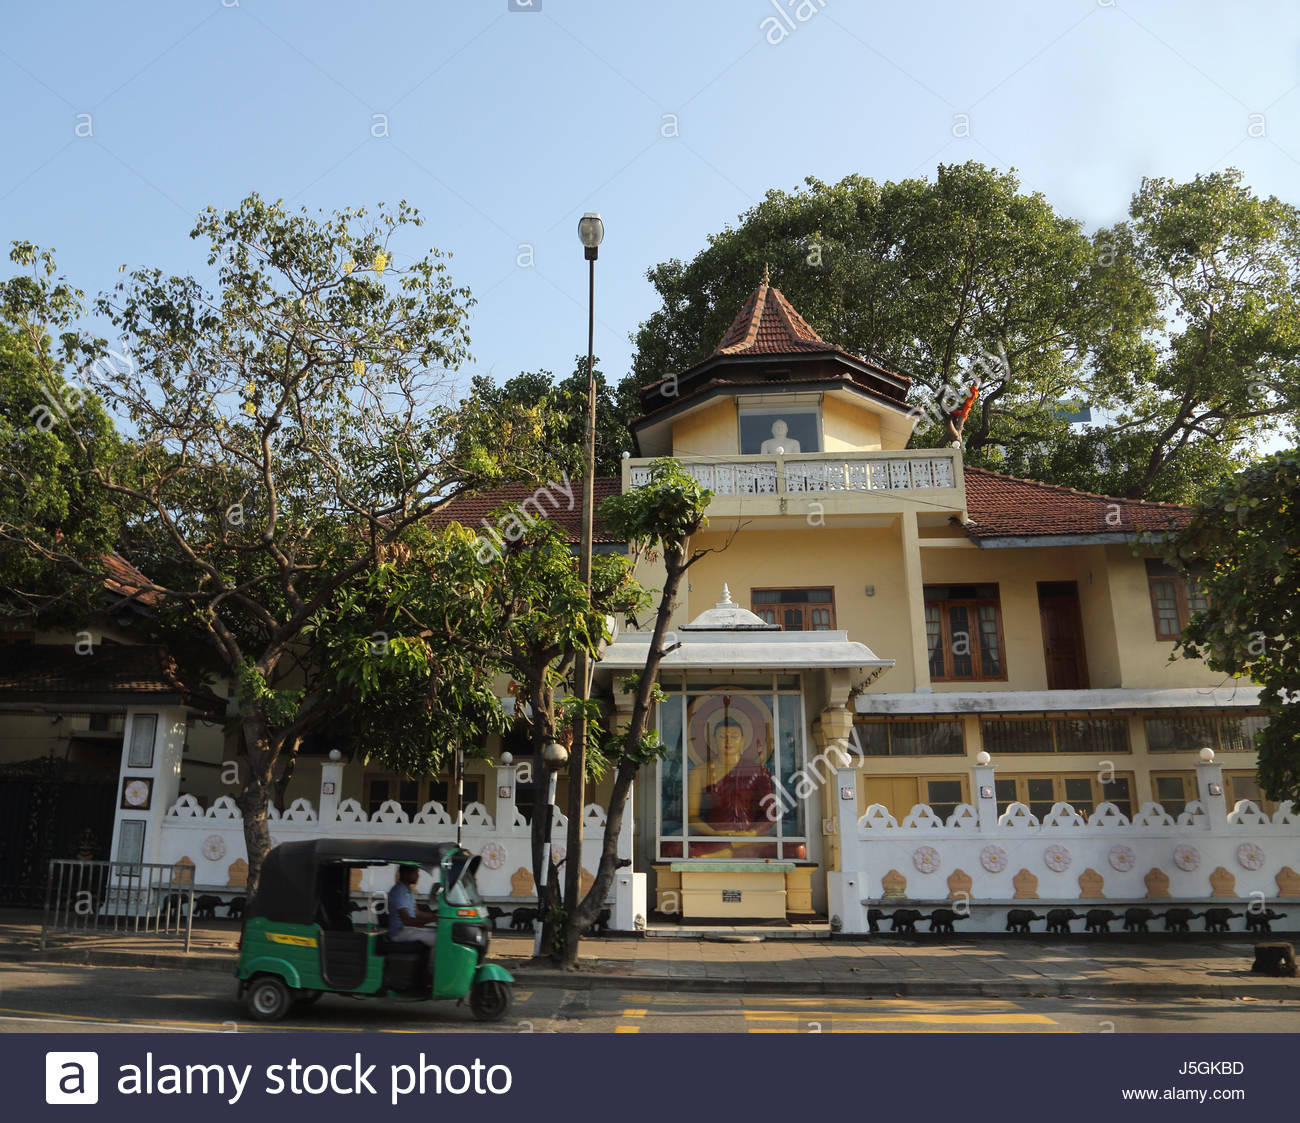 Temple Trees Colombo, At Temple Trees Colombo Stock Photos & At Temple Trees Colombo ...